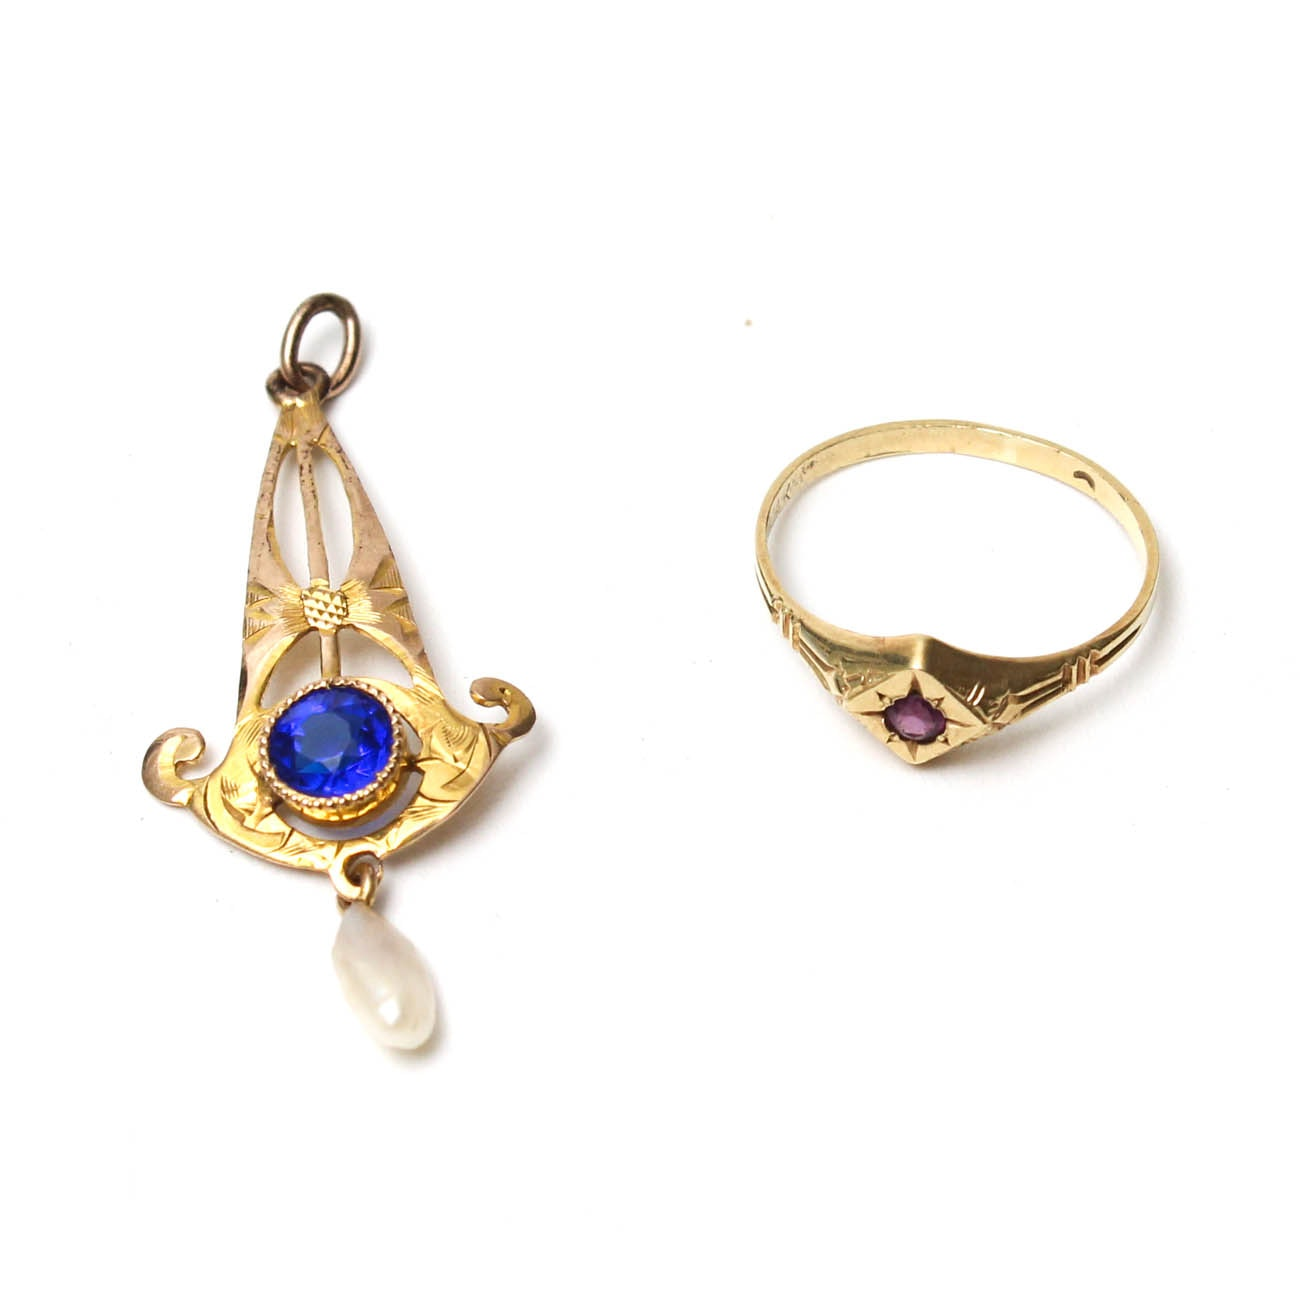 14K Yellow Gold Ring and 10K Pendant